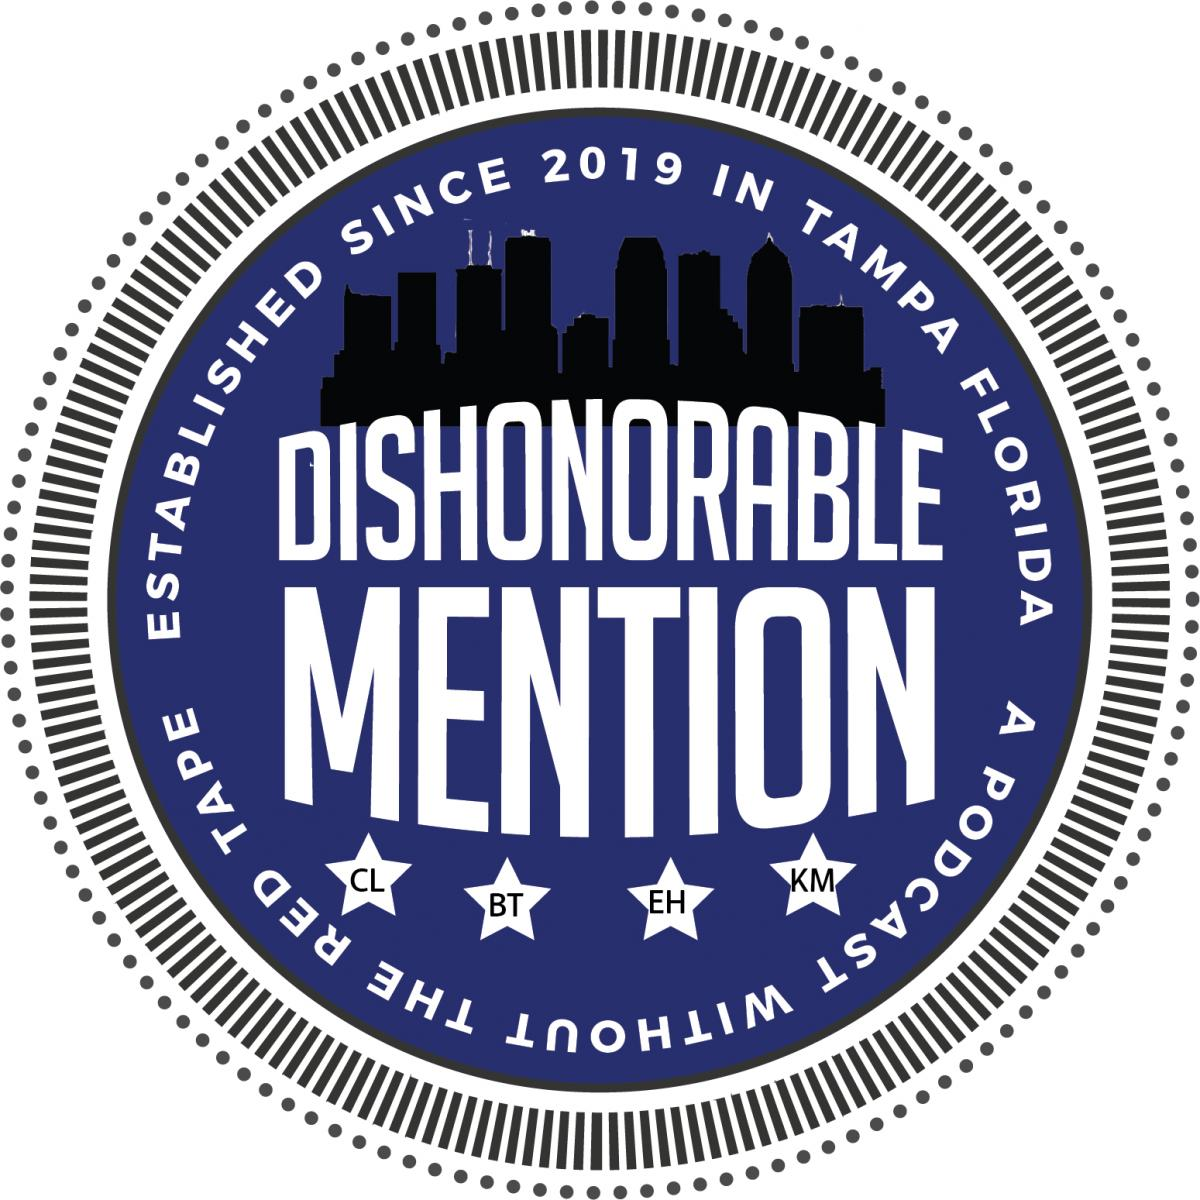 Dishonorable Mention Podcast Episode 37: Mental-Health, Ethical Issues in Media, and Becca's Israel Trip